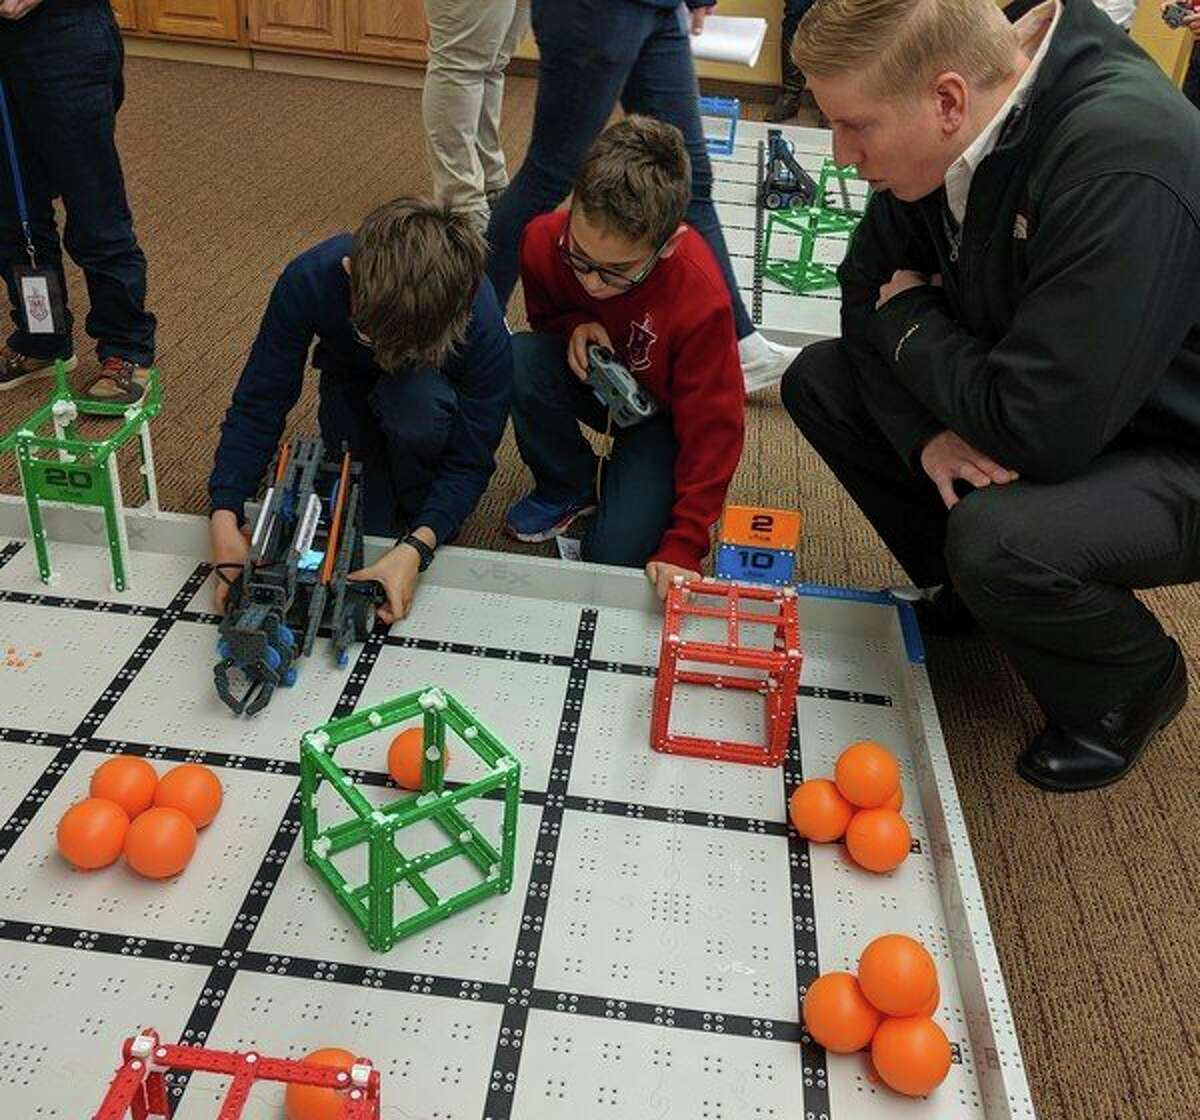 Two Manistee Catholic Central students line up their robot to take a test run on a track at a recent showing of their work at the school. The Sabers are hoping to qualify someone for the state competition this year. (Courtesy photo)